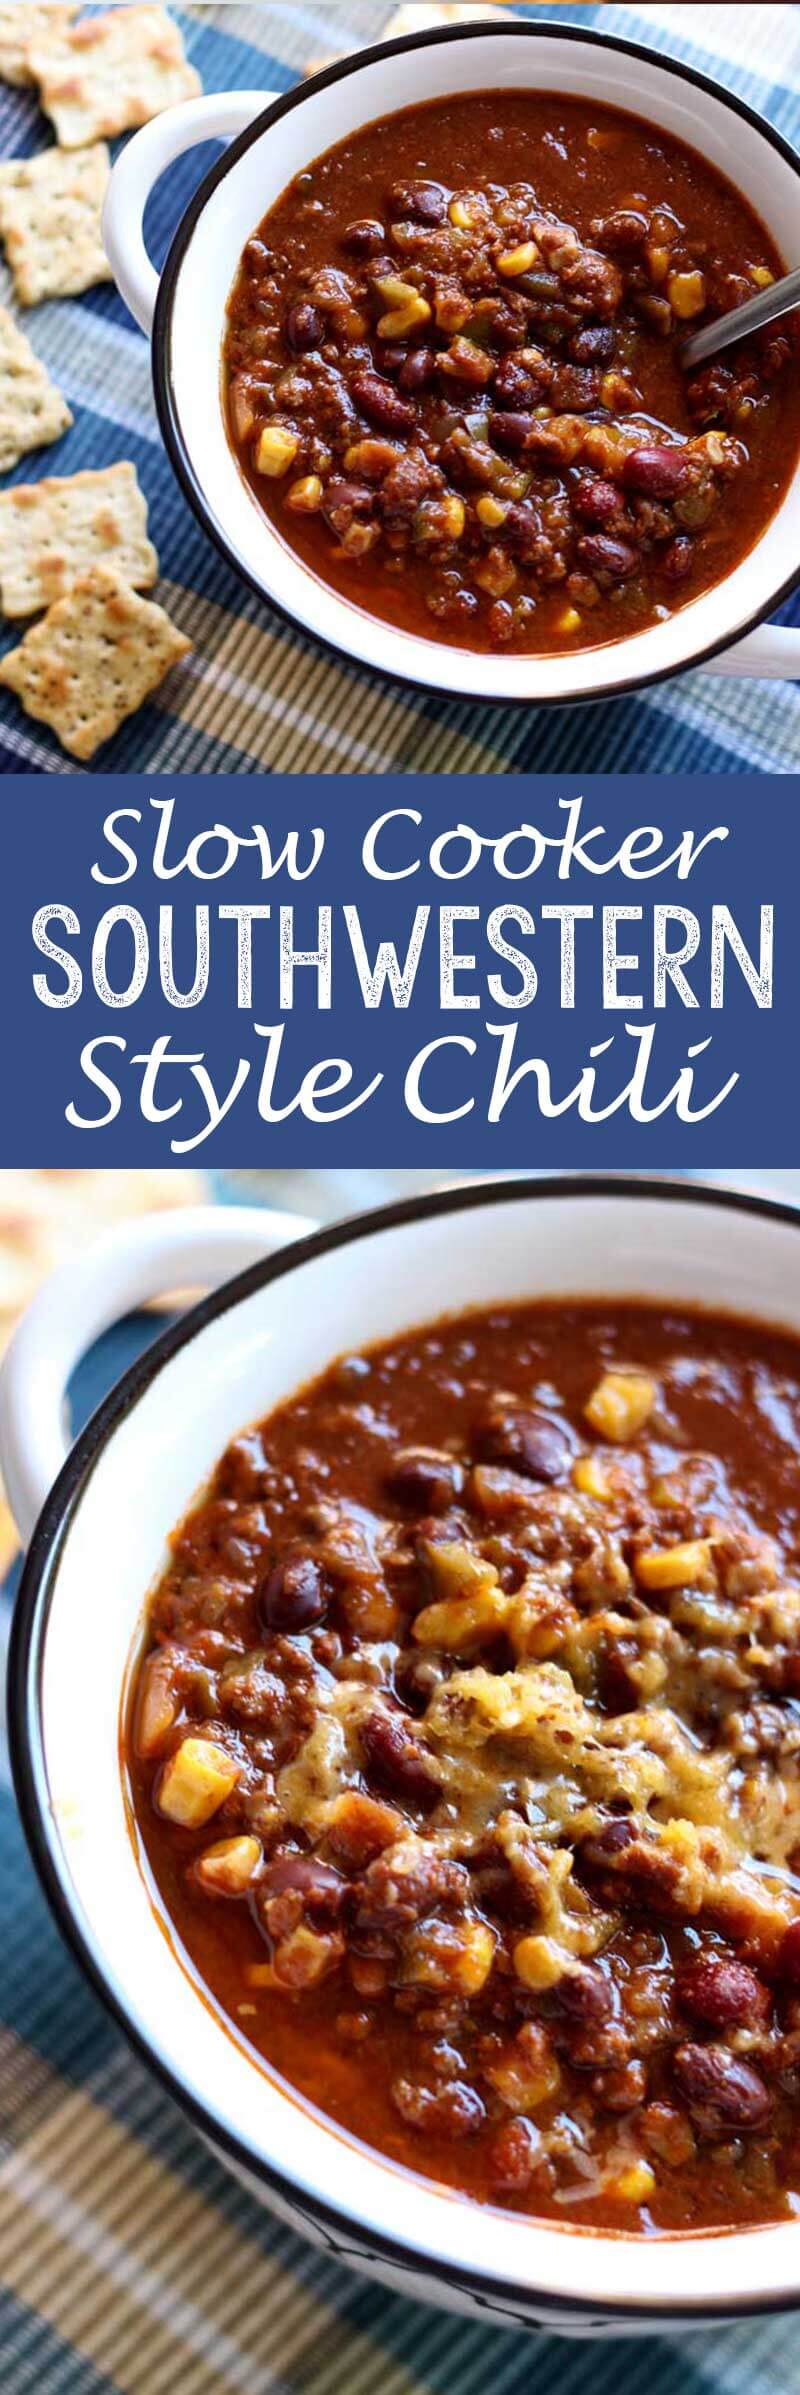 Southwester style chili cooked in the slow cooker or crock pot!